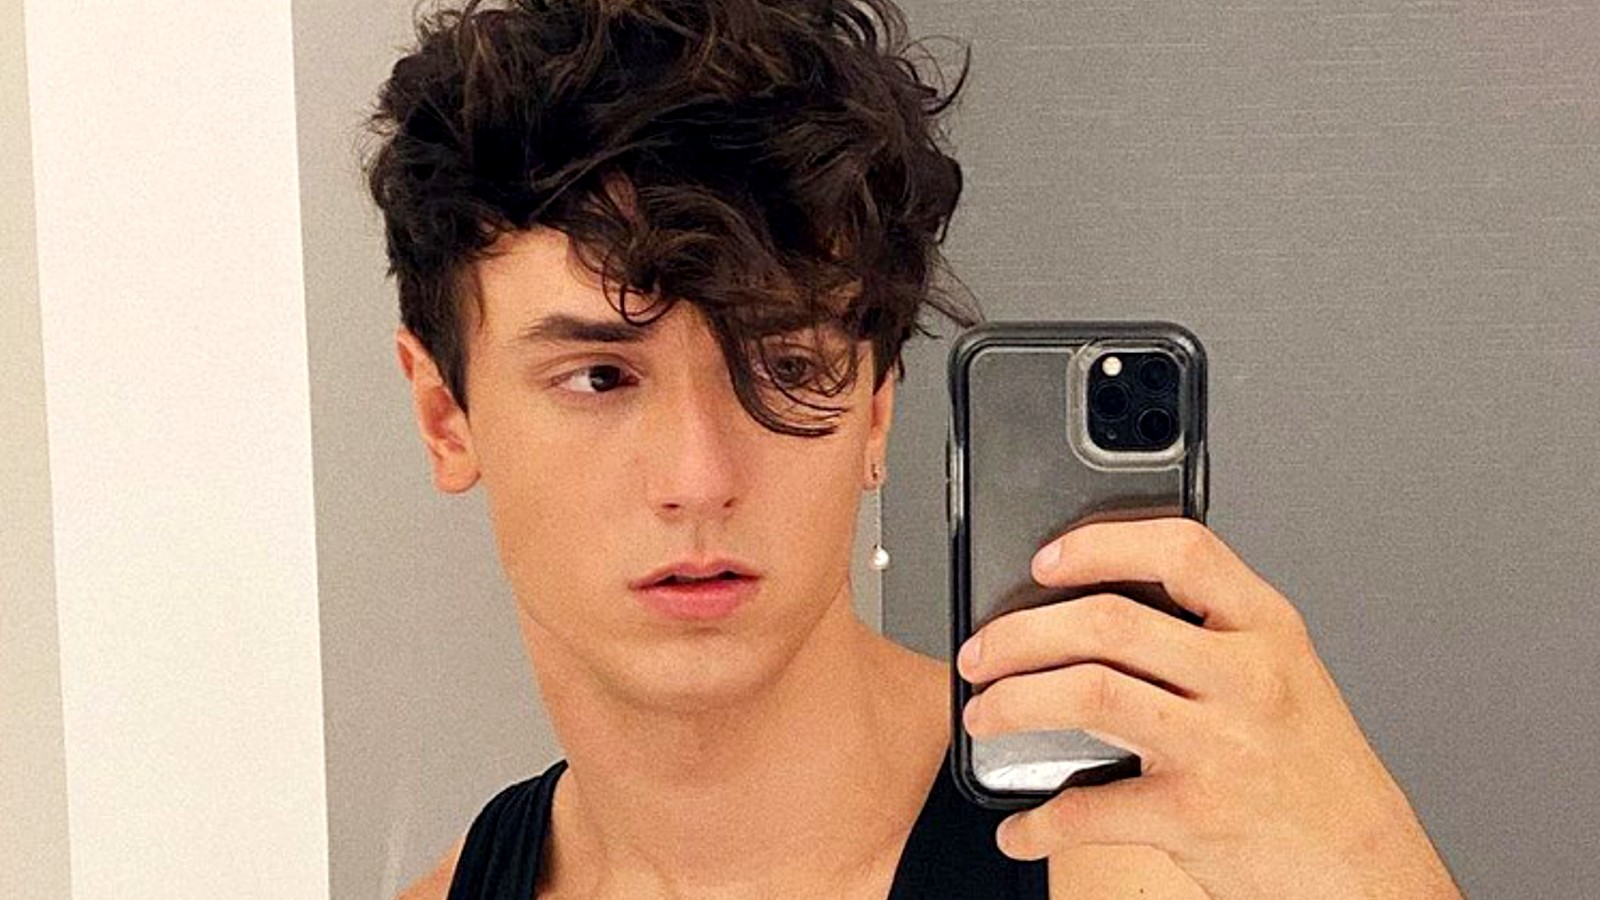 Bryce Hall takes a selfie in the mirror